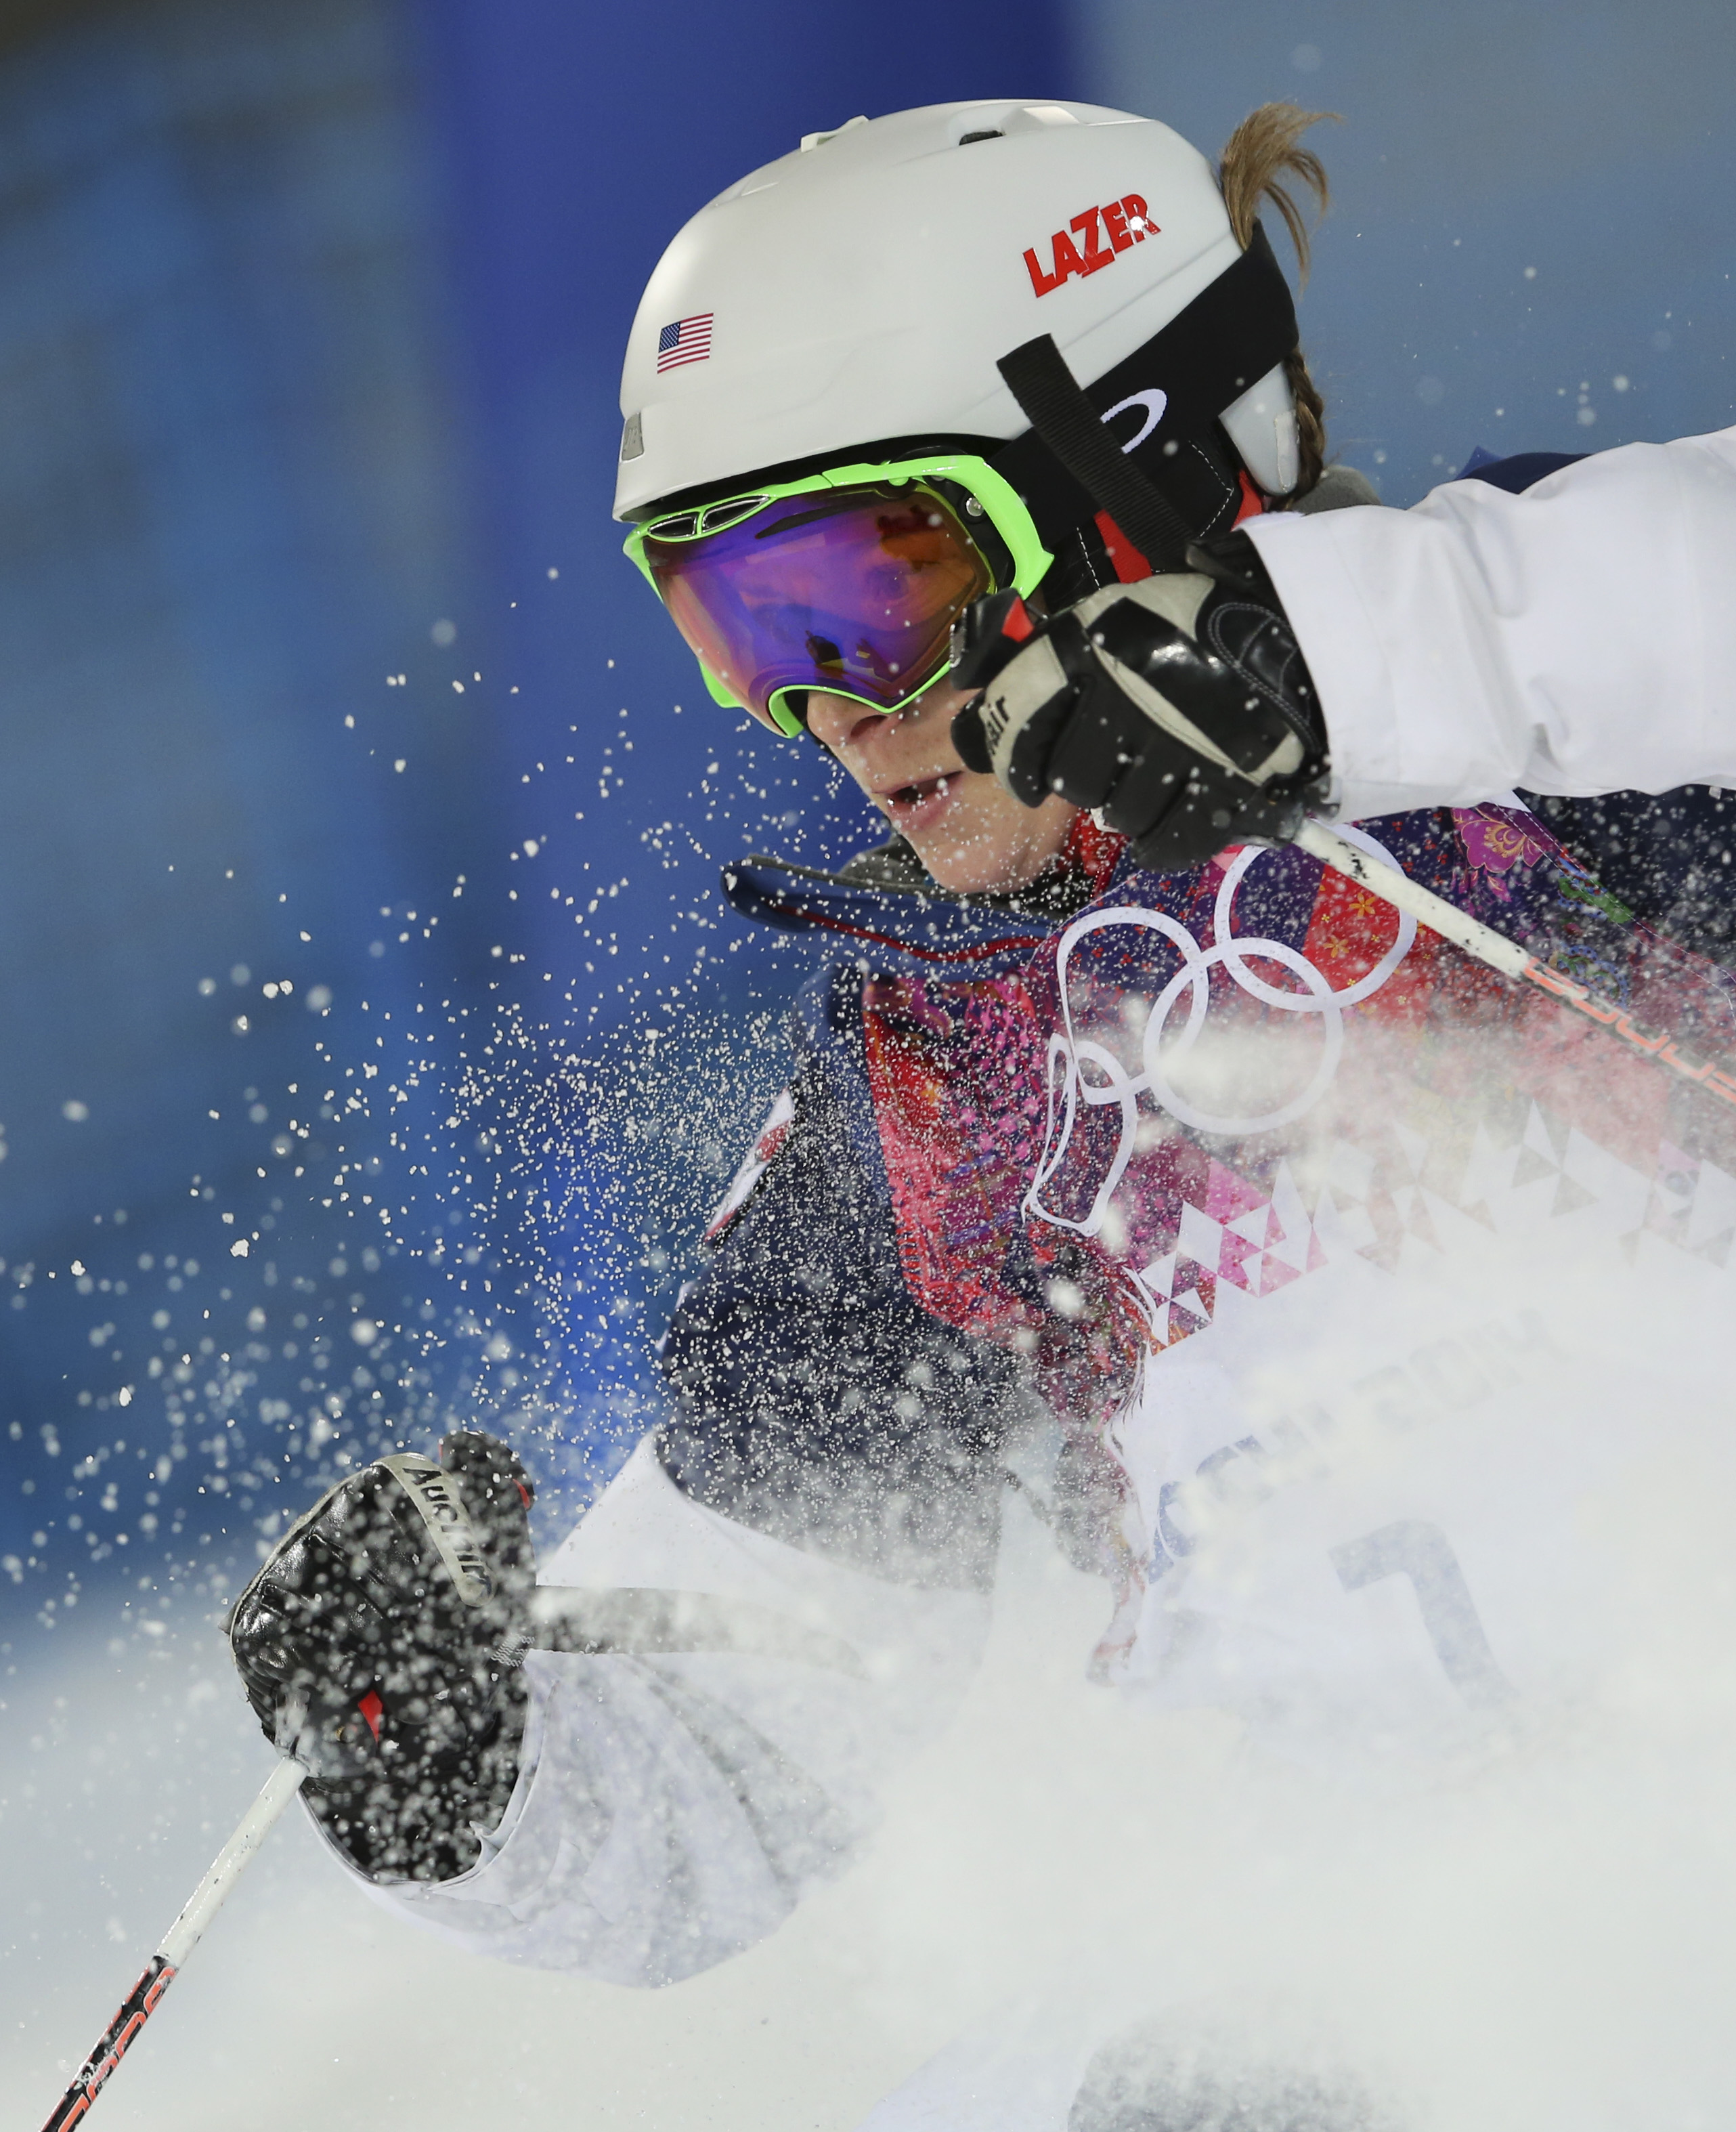 United States' Hannah Kearney runs the course in the women's moguls final at the Rosa Khutor Extreme Park, at the 2014 Winter Olympics, Saturday, Feb. 8, 2014, in Krasnaya Polyana, Russia. (AP Photo/Sergei Grits)